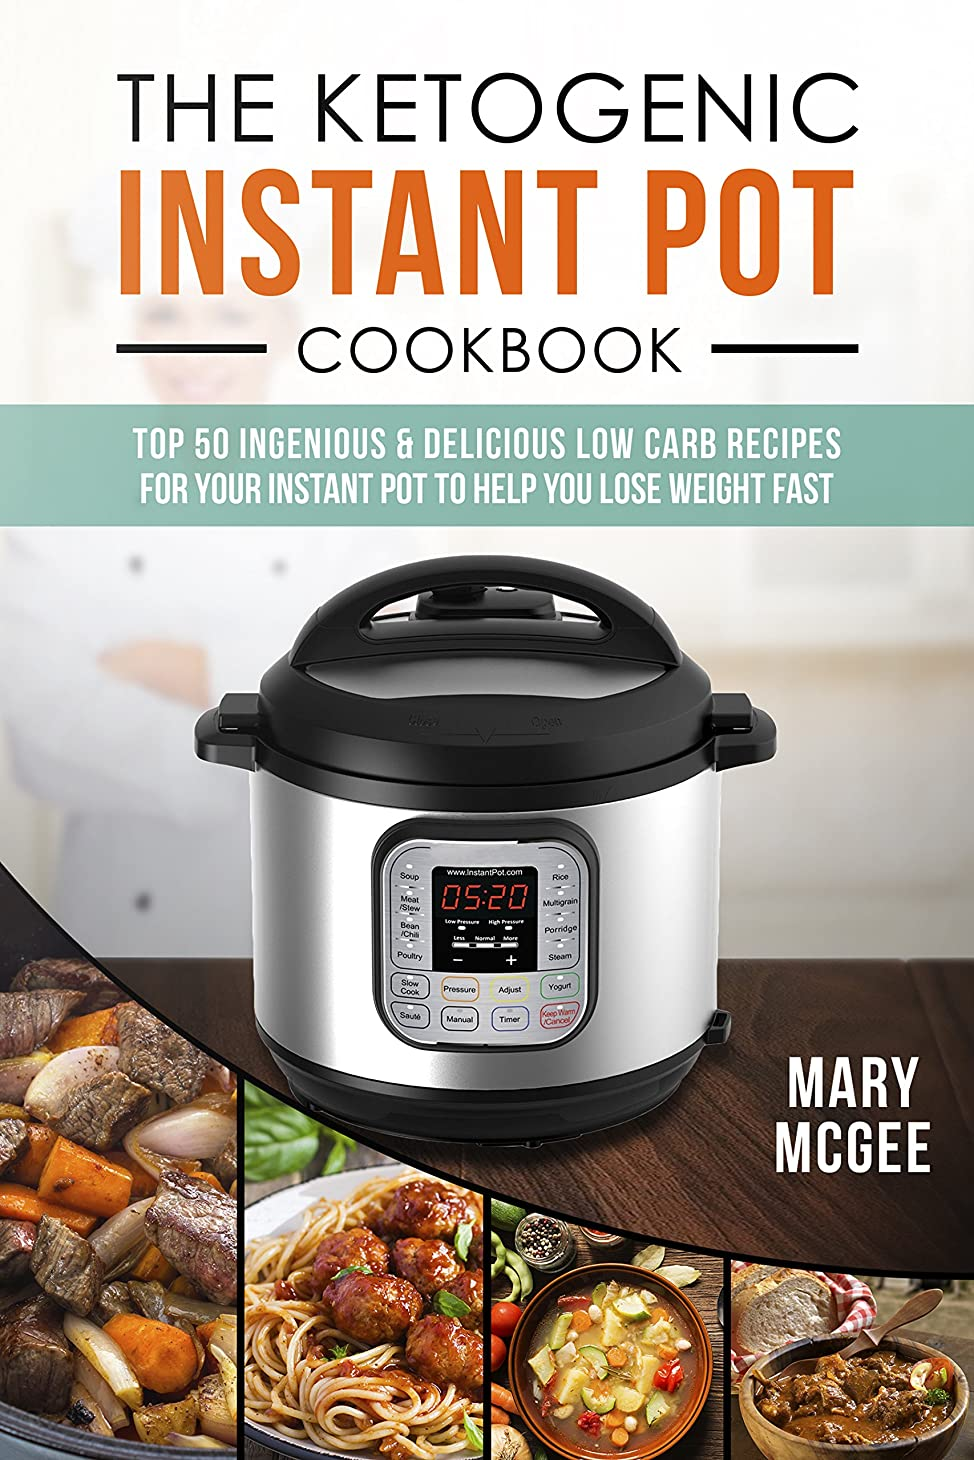 The Ketogenic Instant Pot Cookbook: Top 50 Ingenious and Delicious Low Carb Recipes for Your Instant Pot To Help You Lose Weight Fast (English Edition)